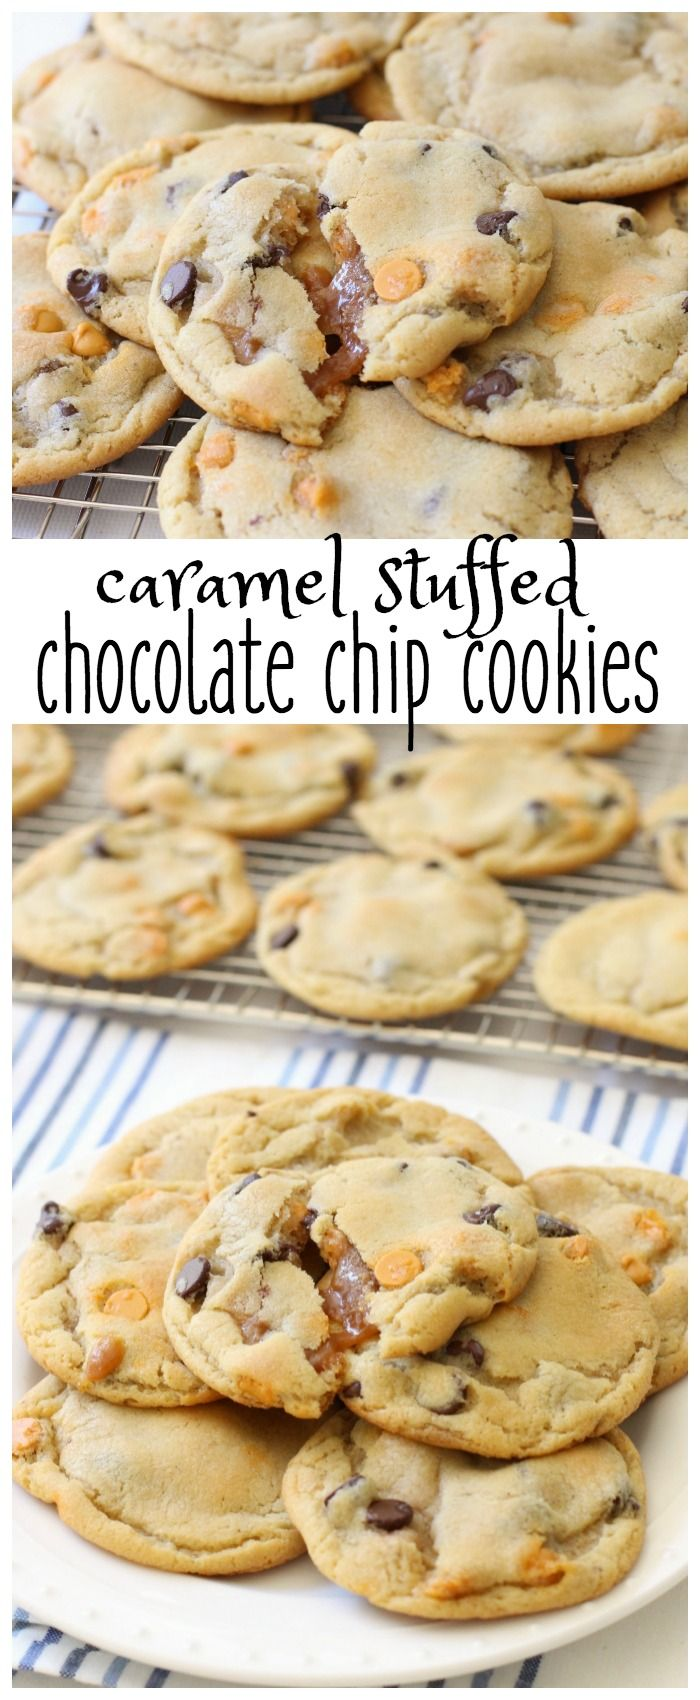 17 Best images about Good Eats on Pinterest   Chocolate cakes ...